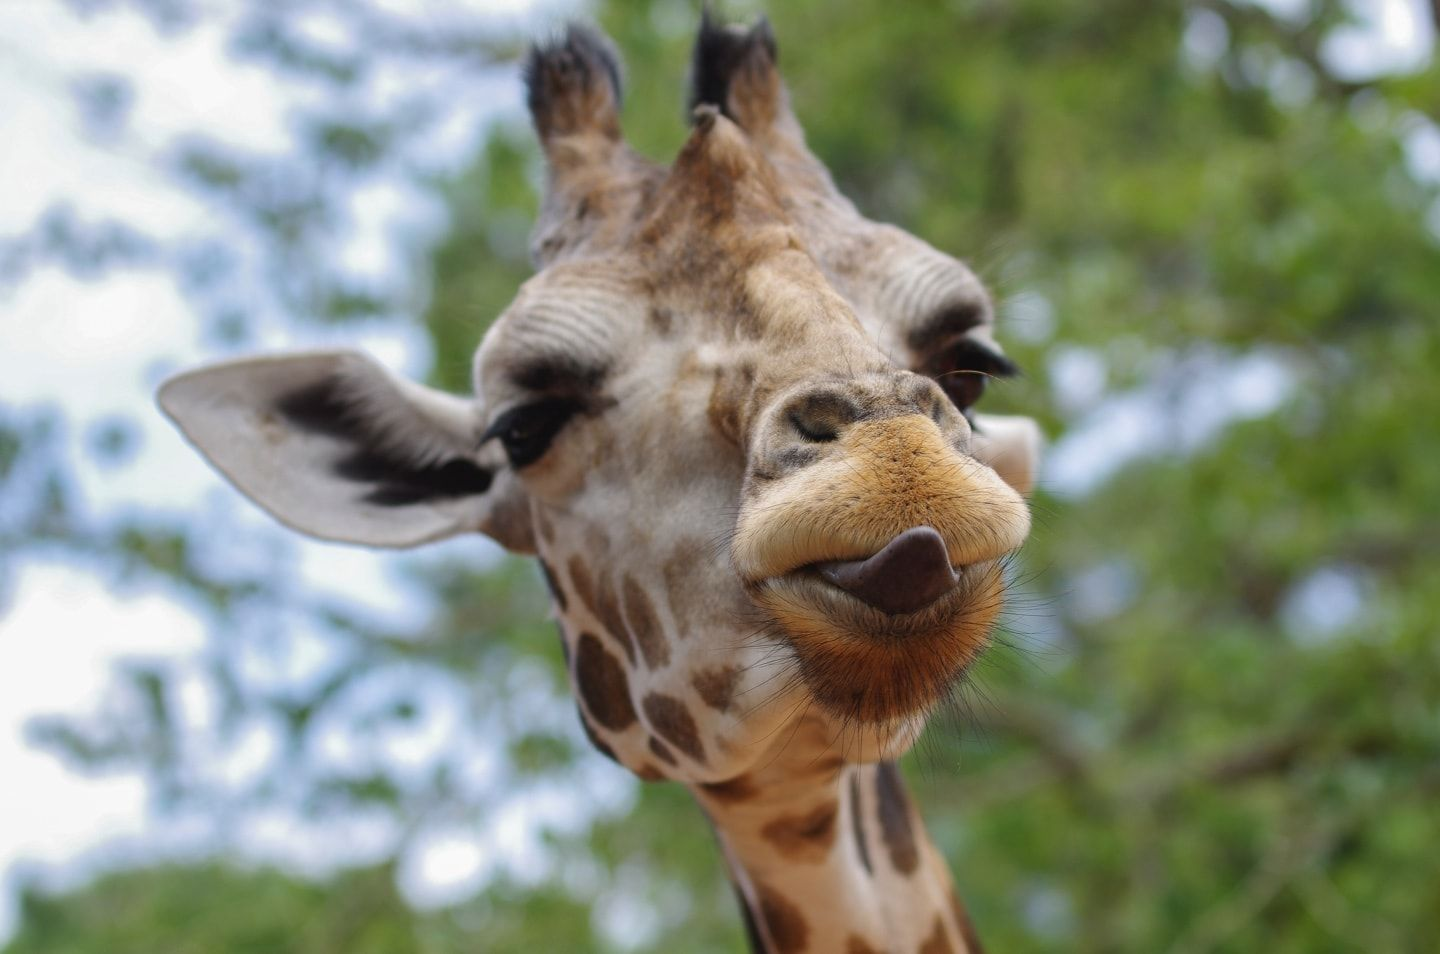 Giraffe with his tongue out